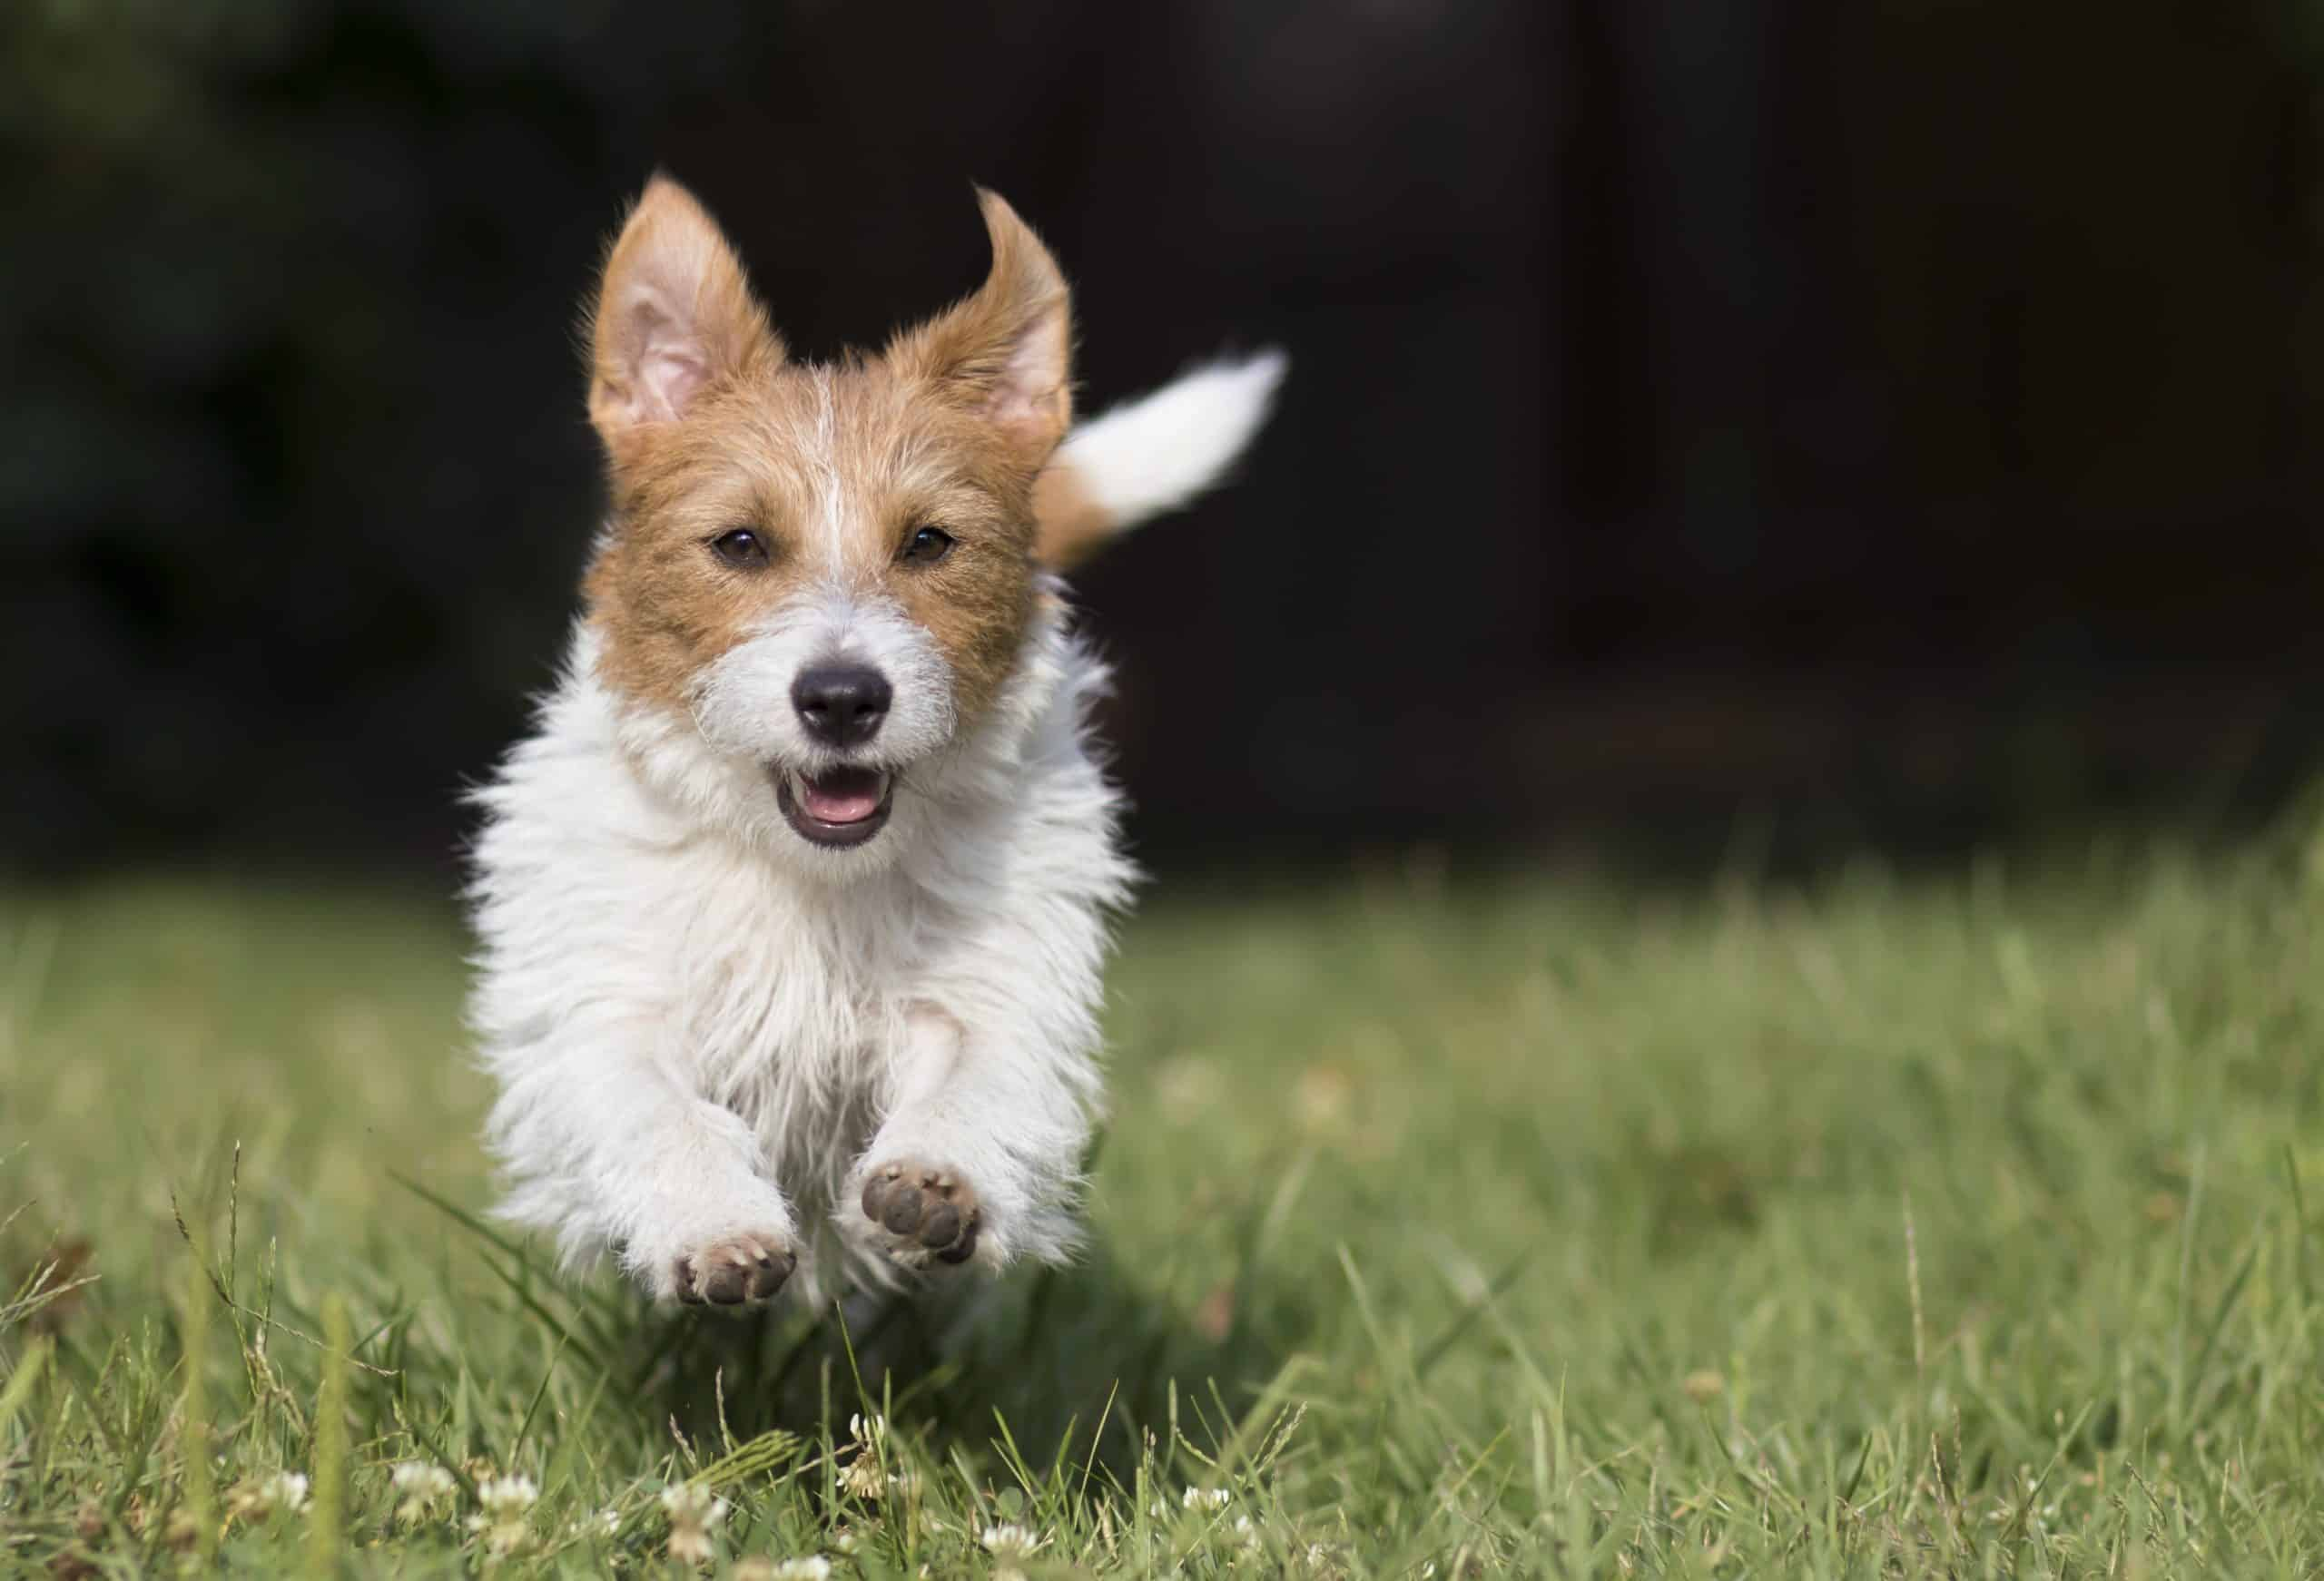 Jack Russell comes when called. Use puppy bonding games to strengthen key skills that every pup should have including coming when called and sitting when asked.